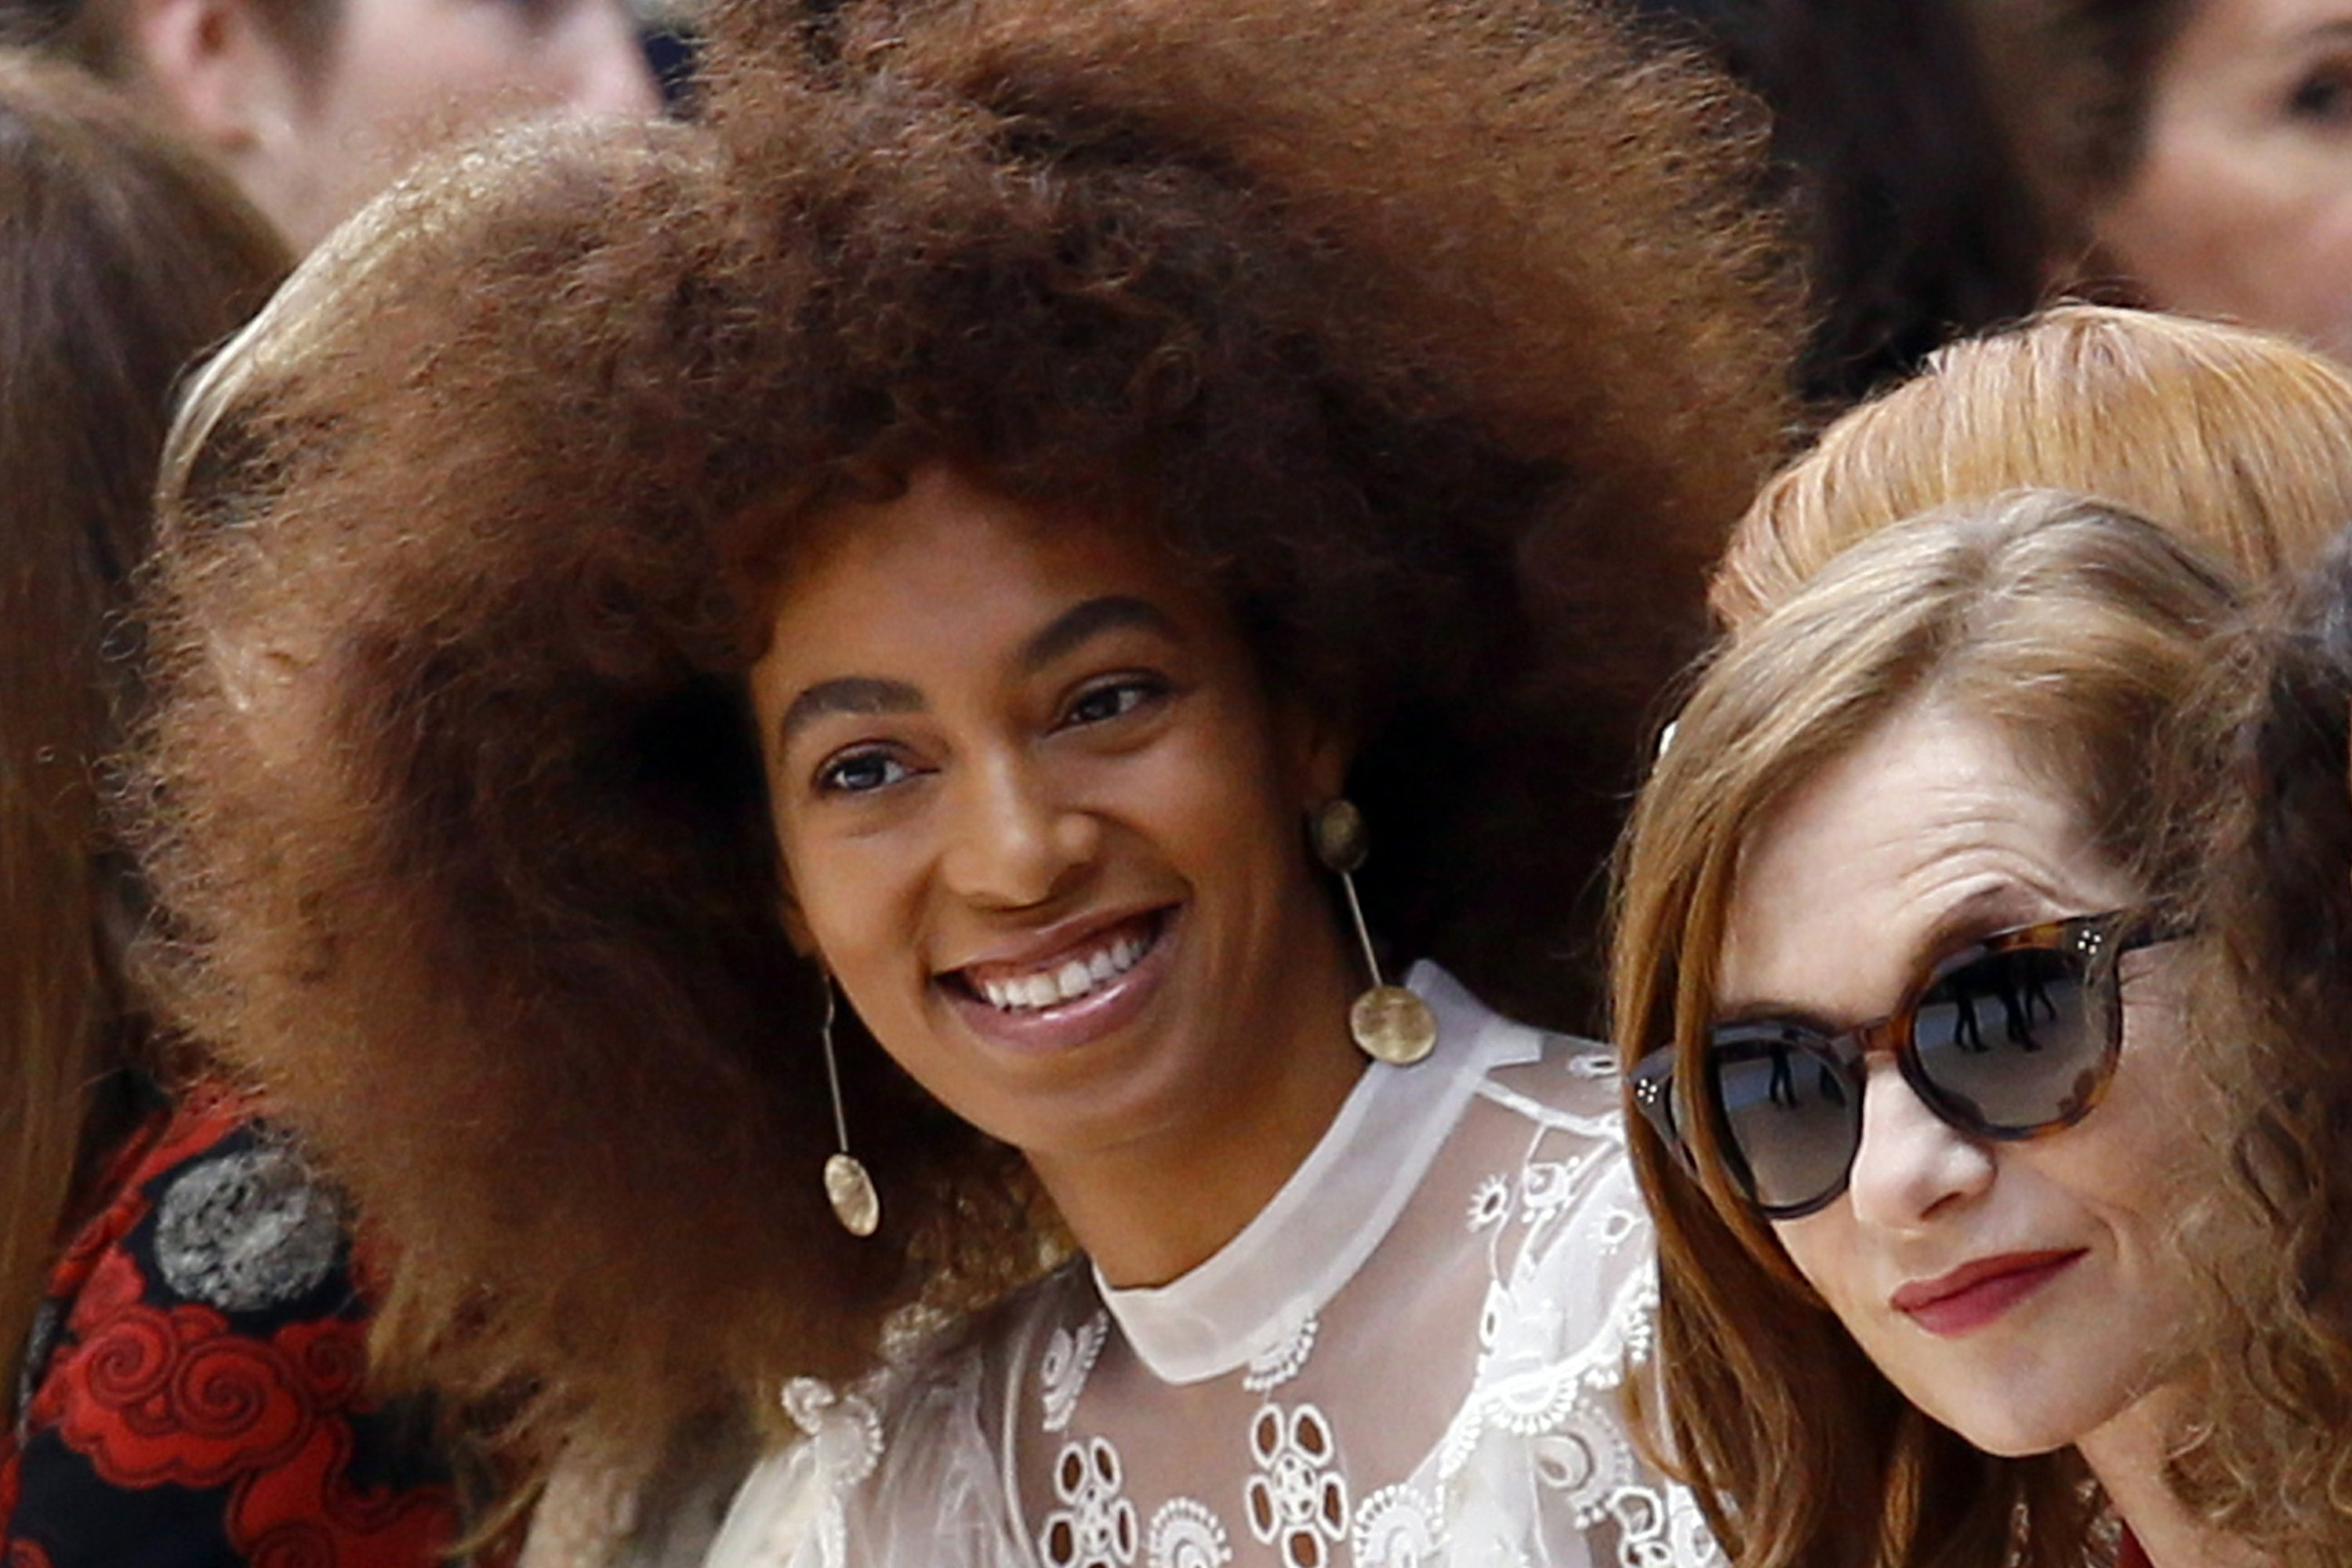 UK paper sorry for airbrushing out Solange Knowles's braids